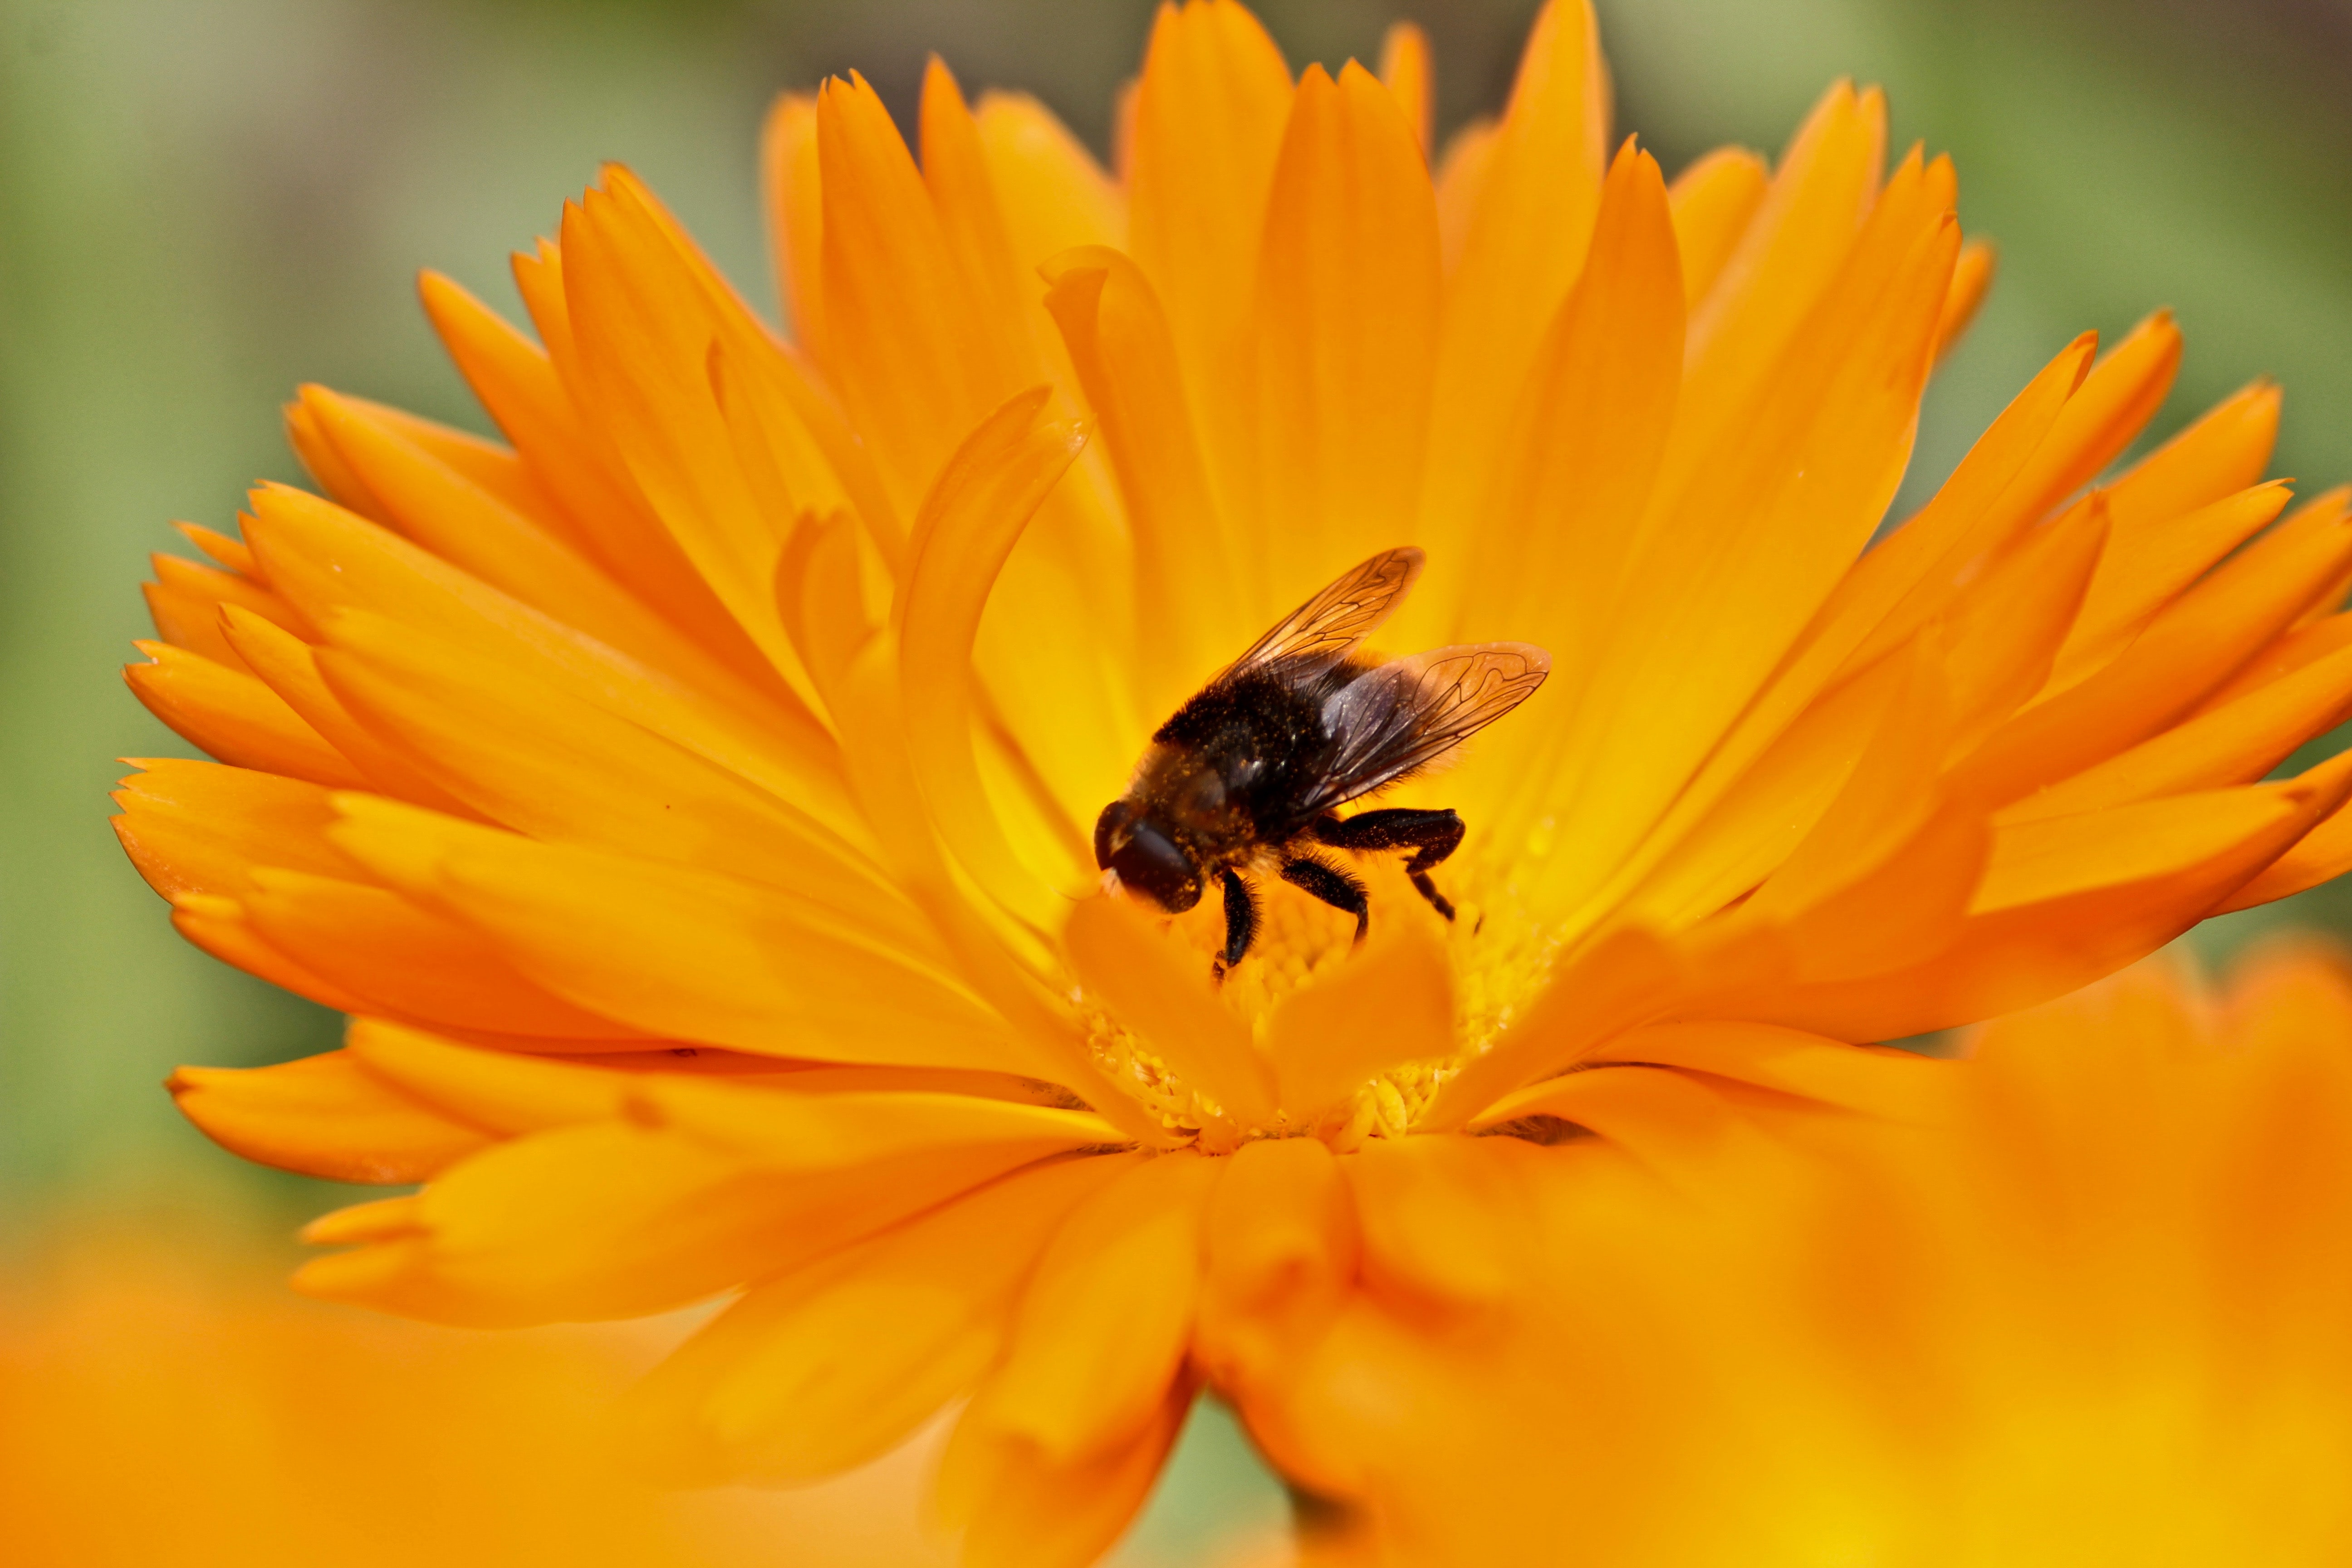 A macro shot of a bee in the center of a bright yellow flower